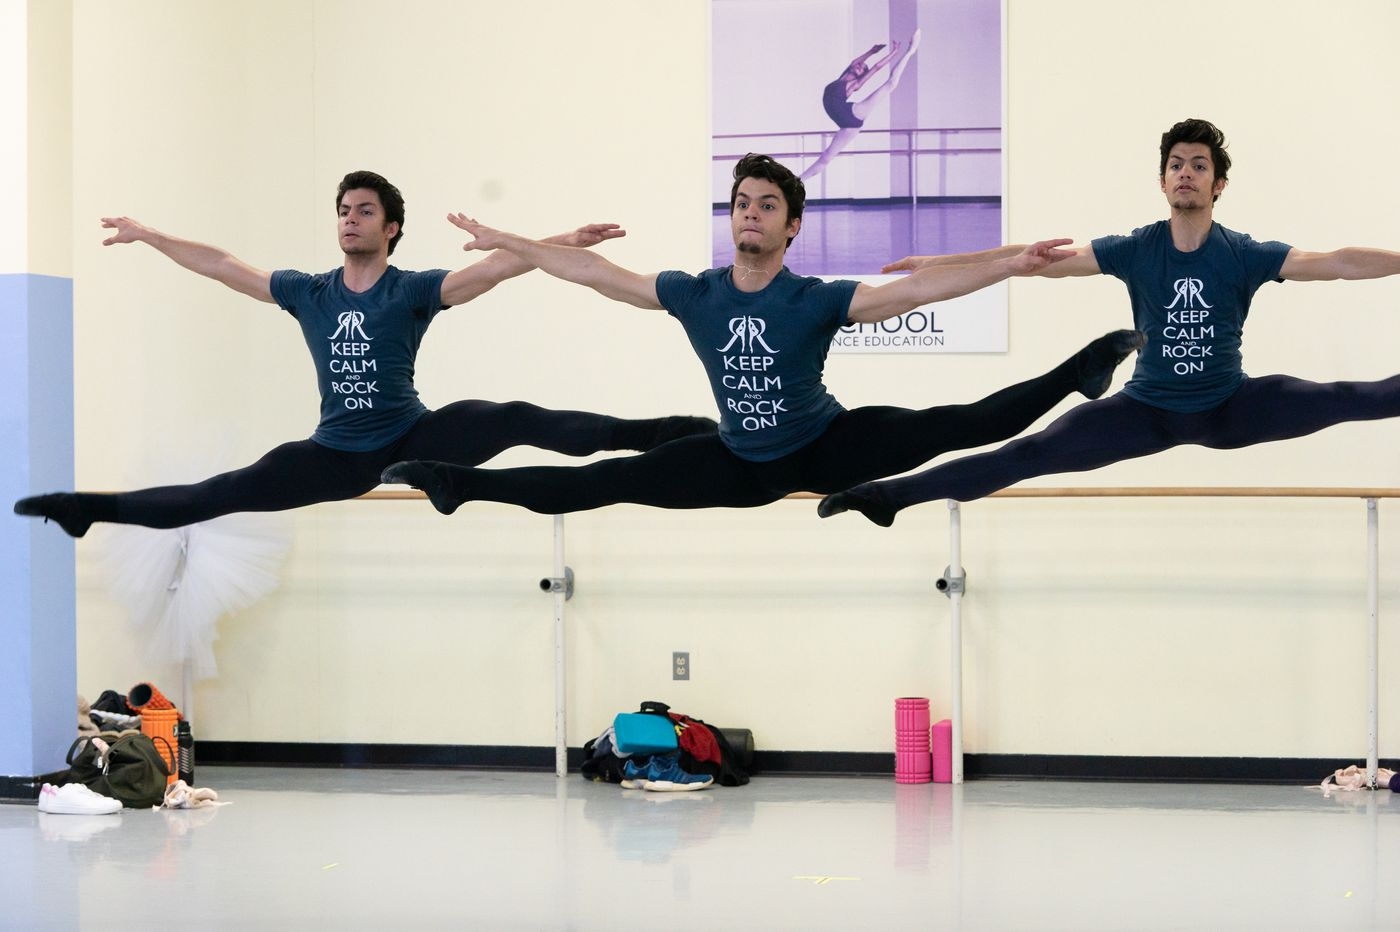 Cuban triplet dancers are set to leap onto Philadelphia's ballet scene … and then the world's